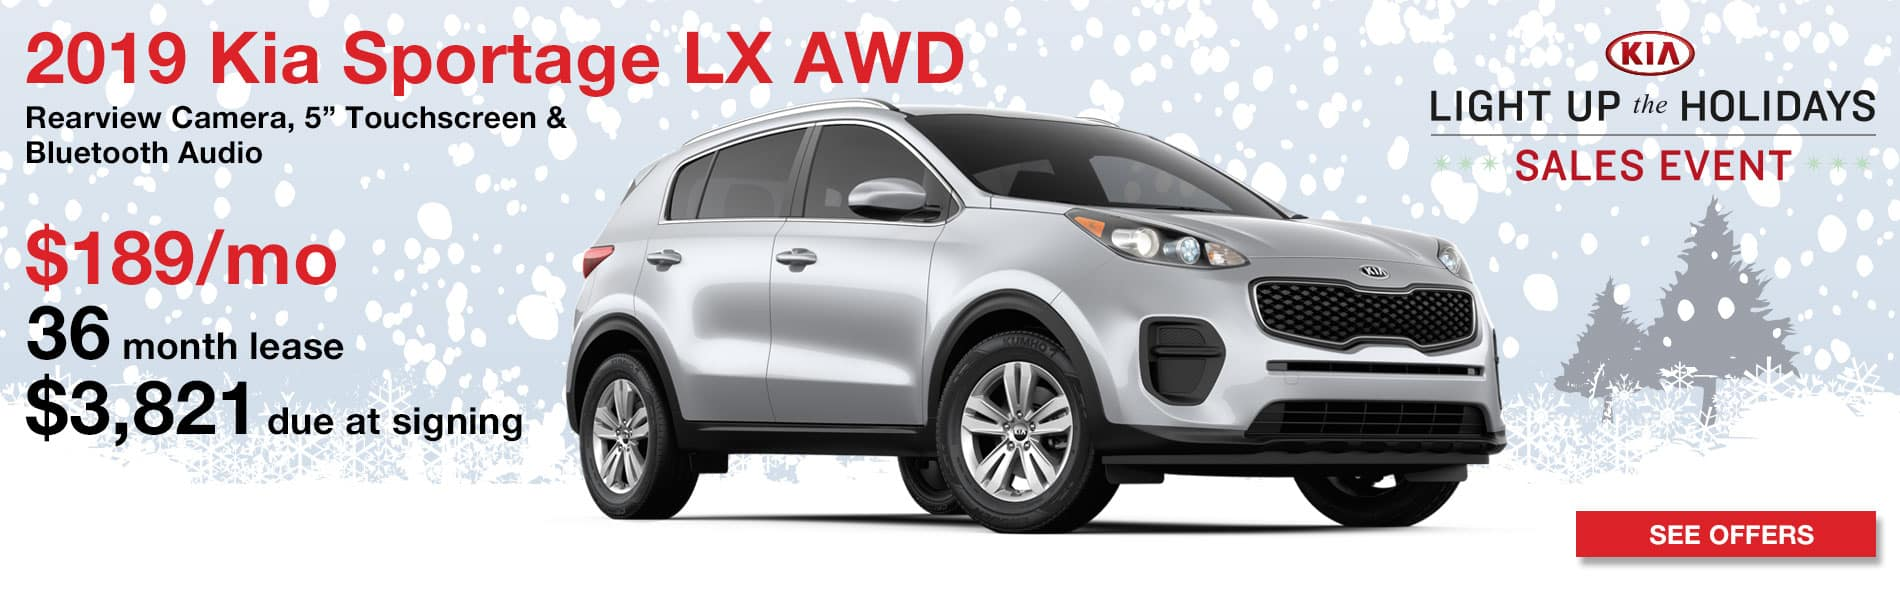 Lease a 2019 Kia Sportage LX AWD for $189 per month with $3,821 due at signing